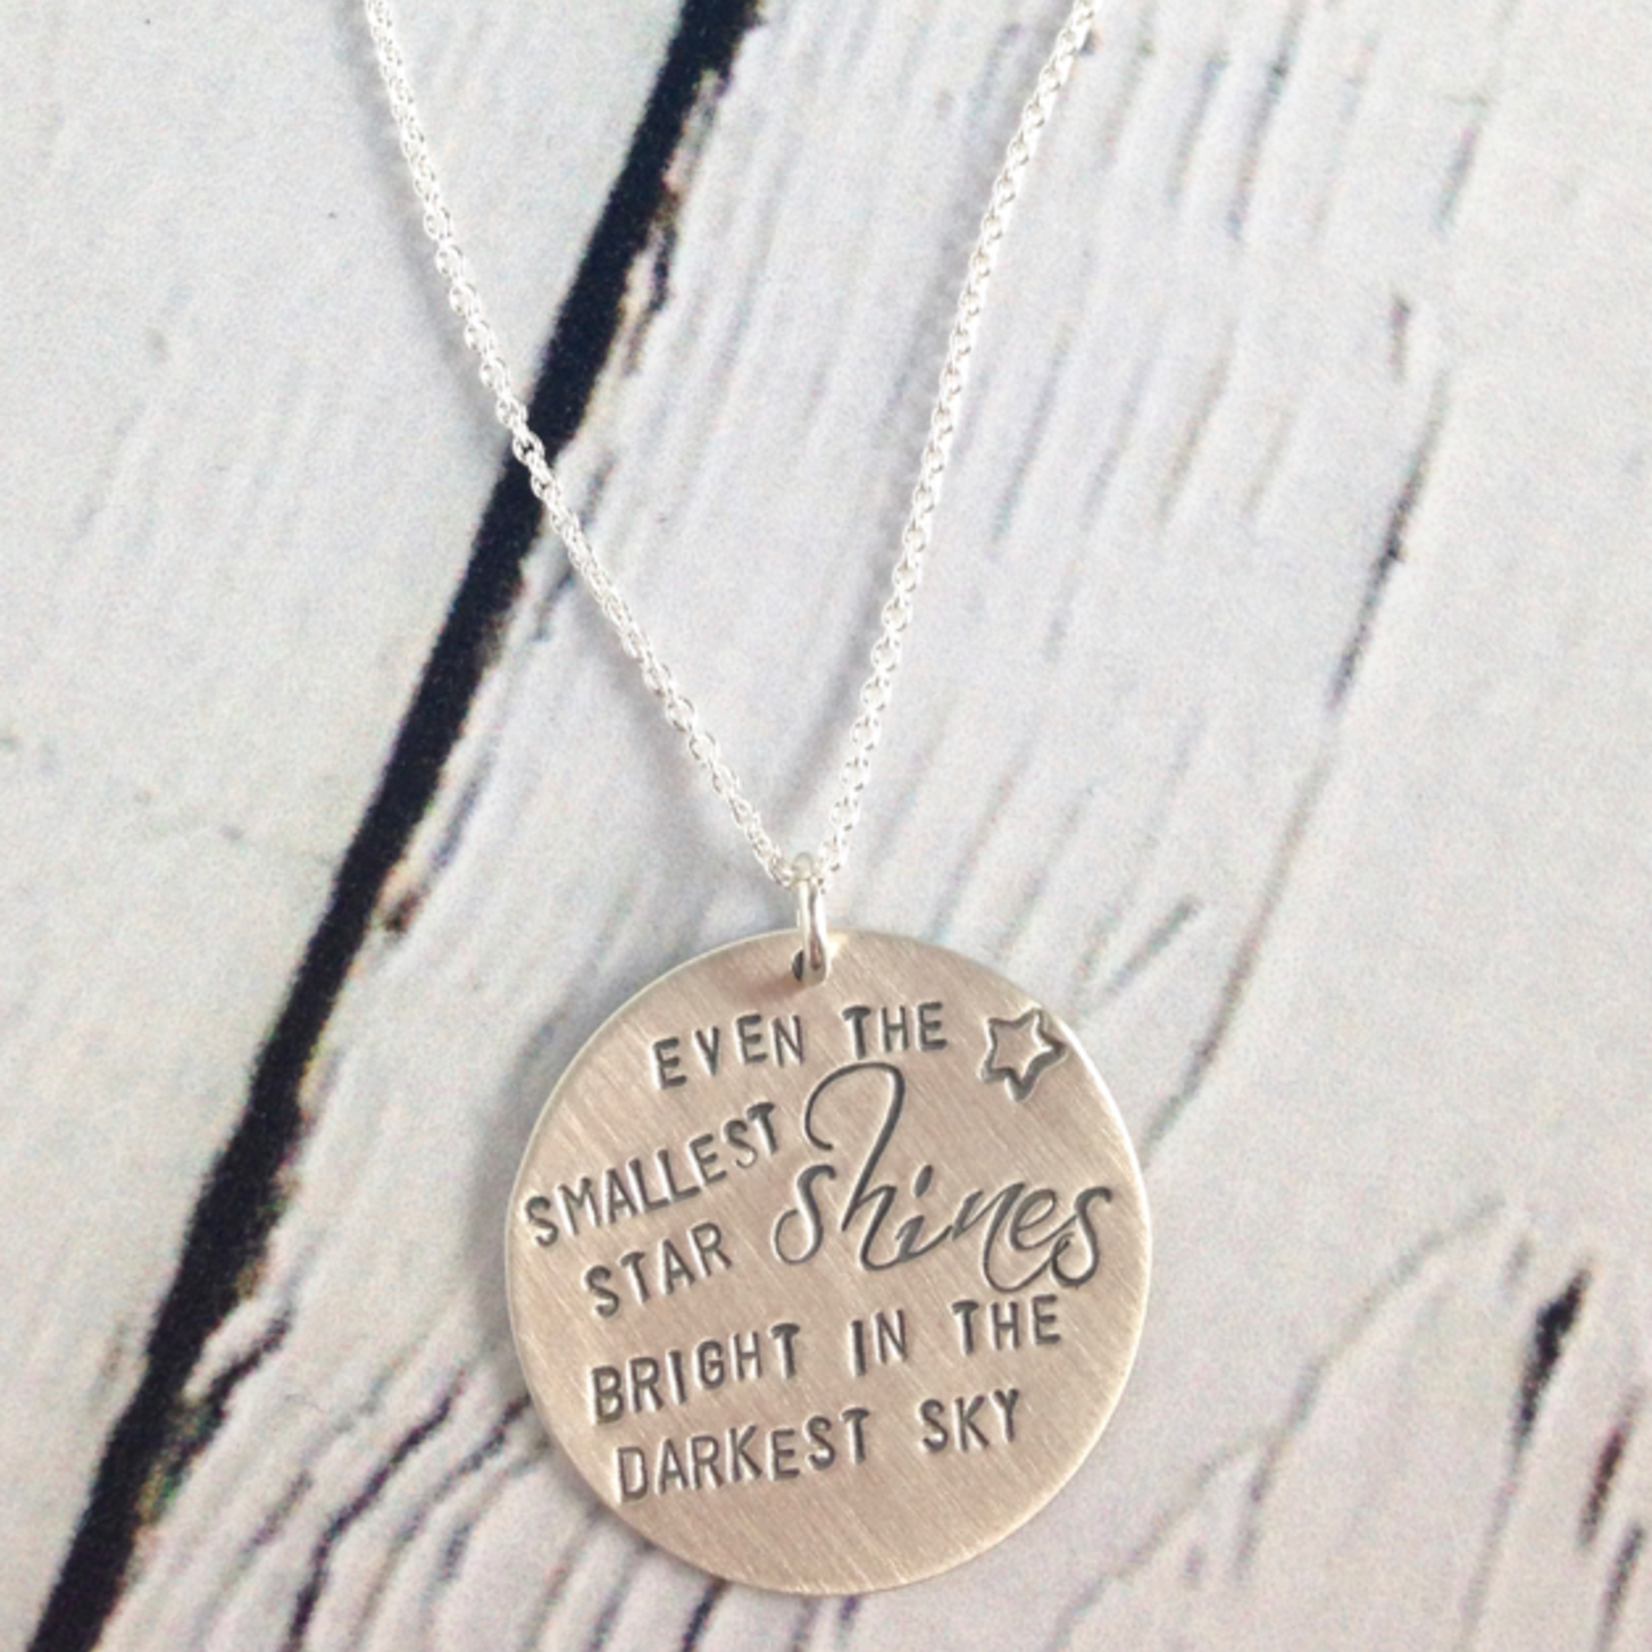 Even the Smallest Star Shine Bright Handstamped Necklace